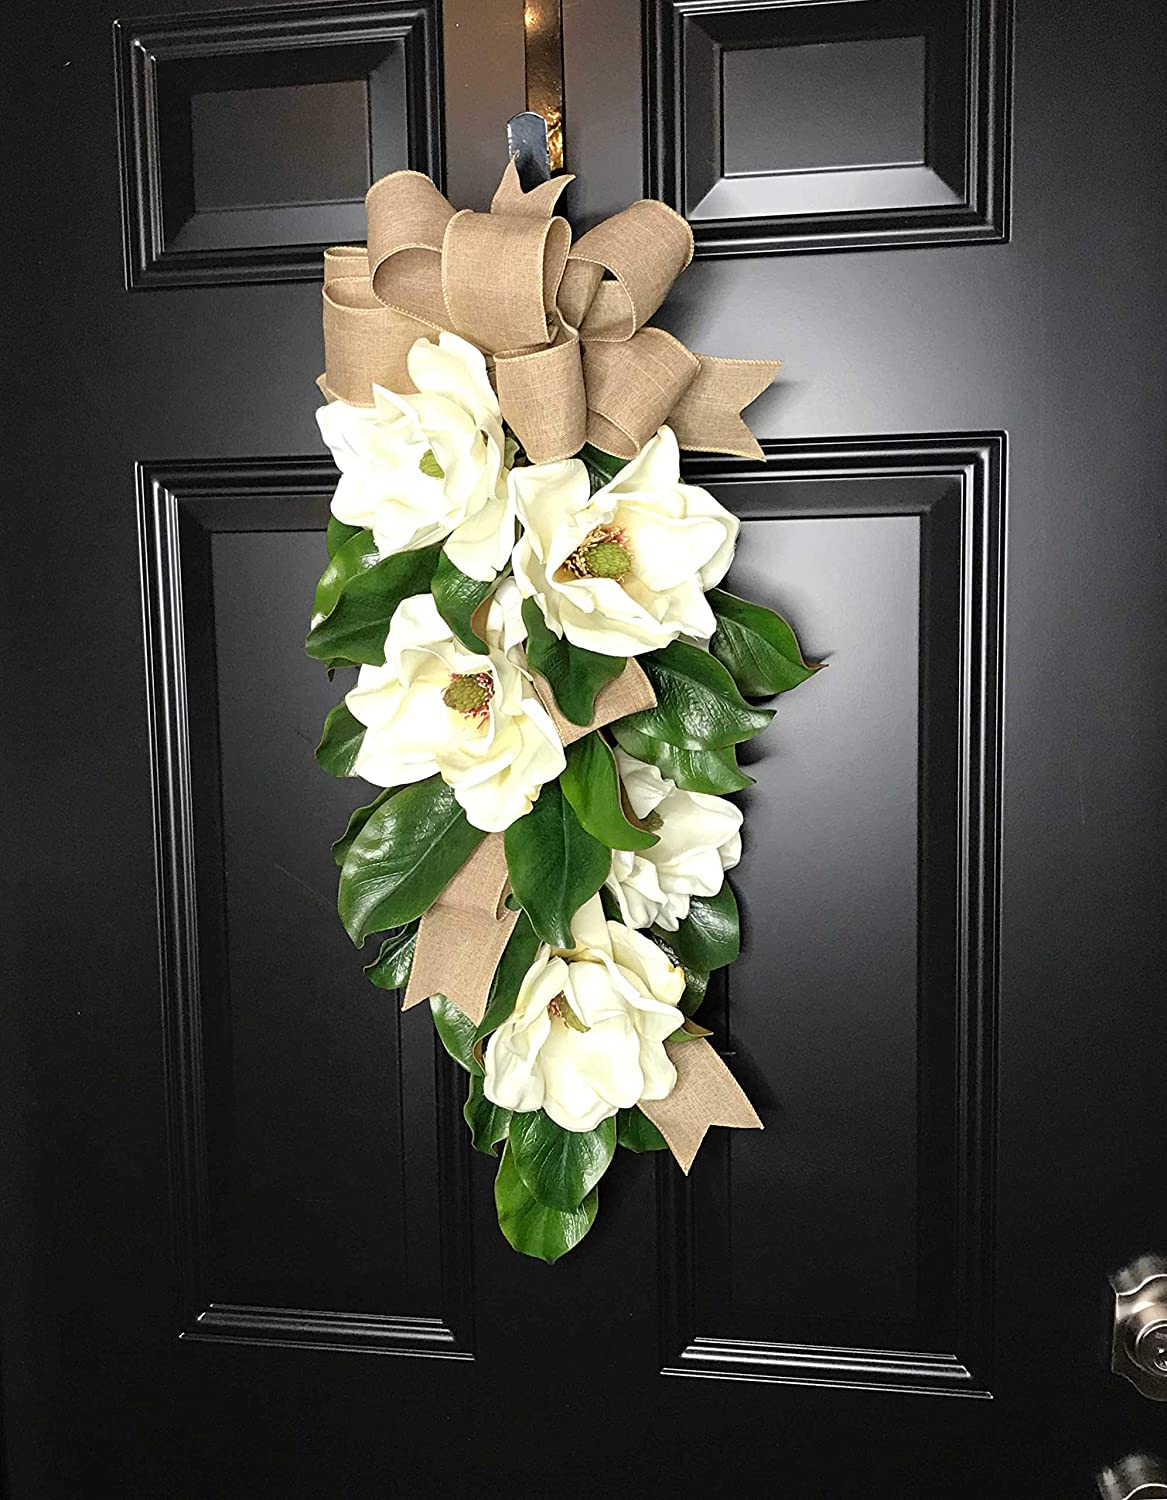 Handmade Teardrop Magnolia Wreath-Magnolia Swag for Front Door Porch Indoor Wall Farmhouse Decor Spring Springtime Summer Summertime Fall Year Round Large 30L x 18 W